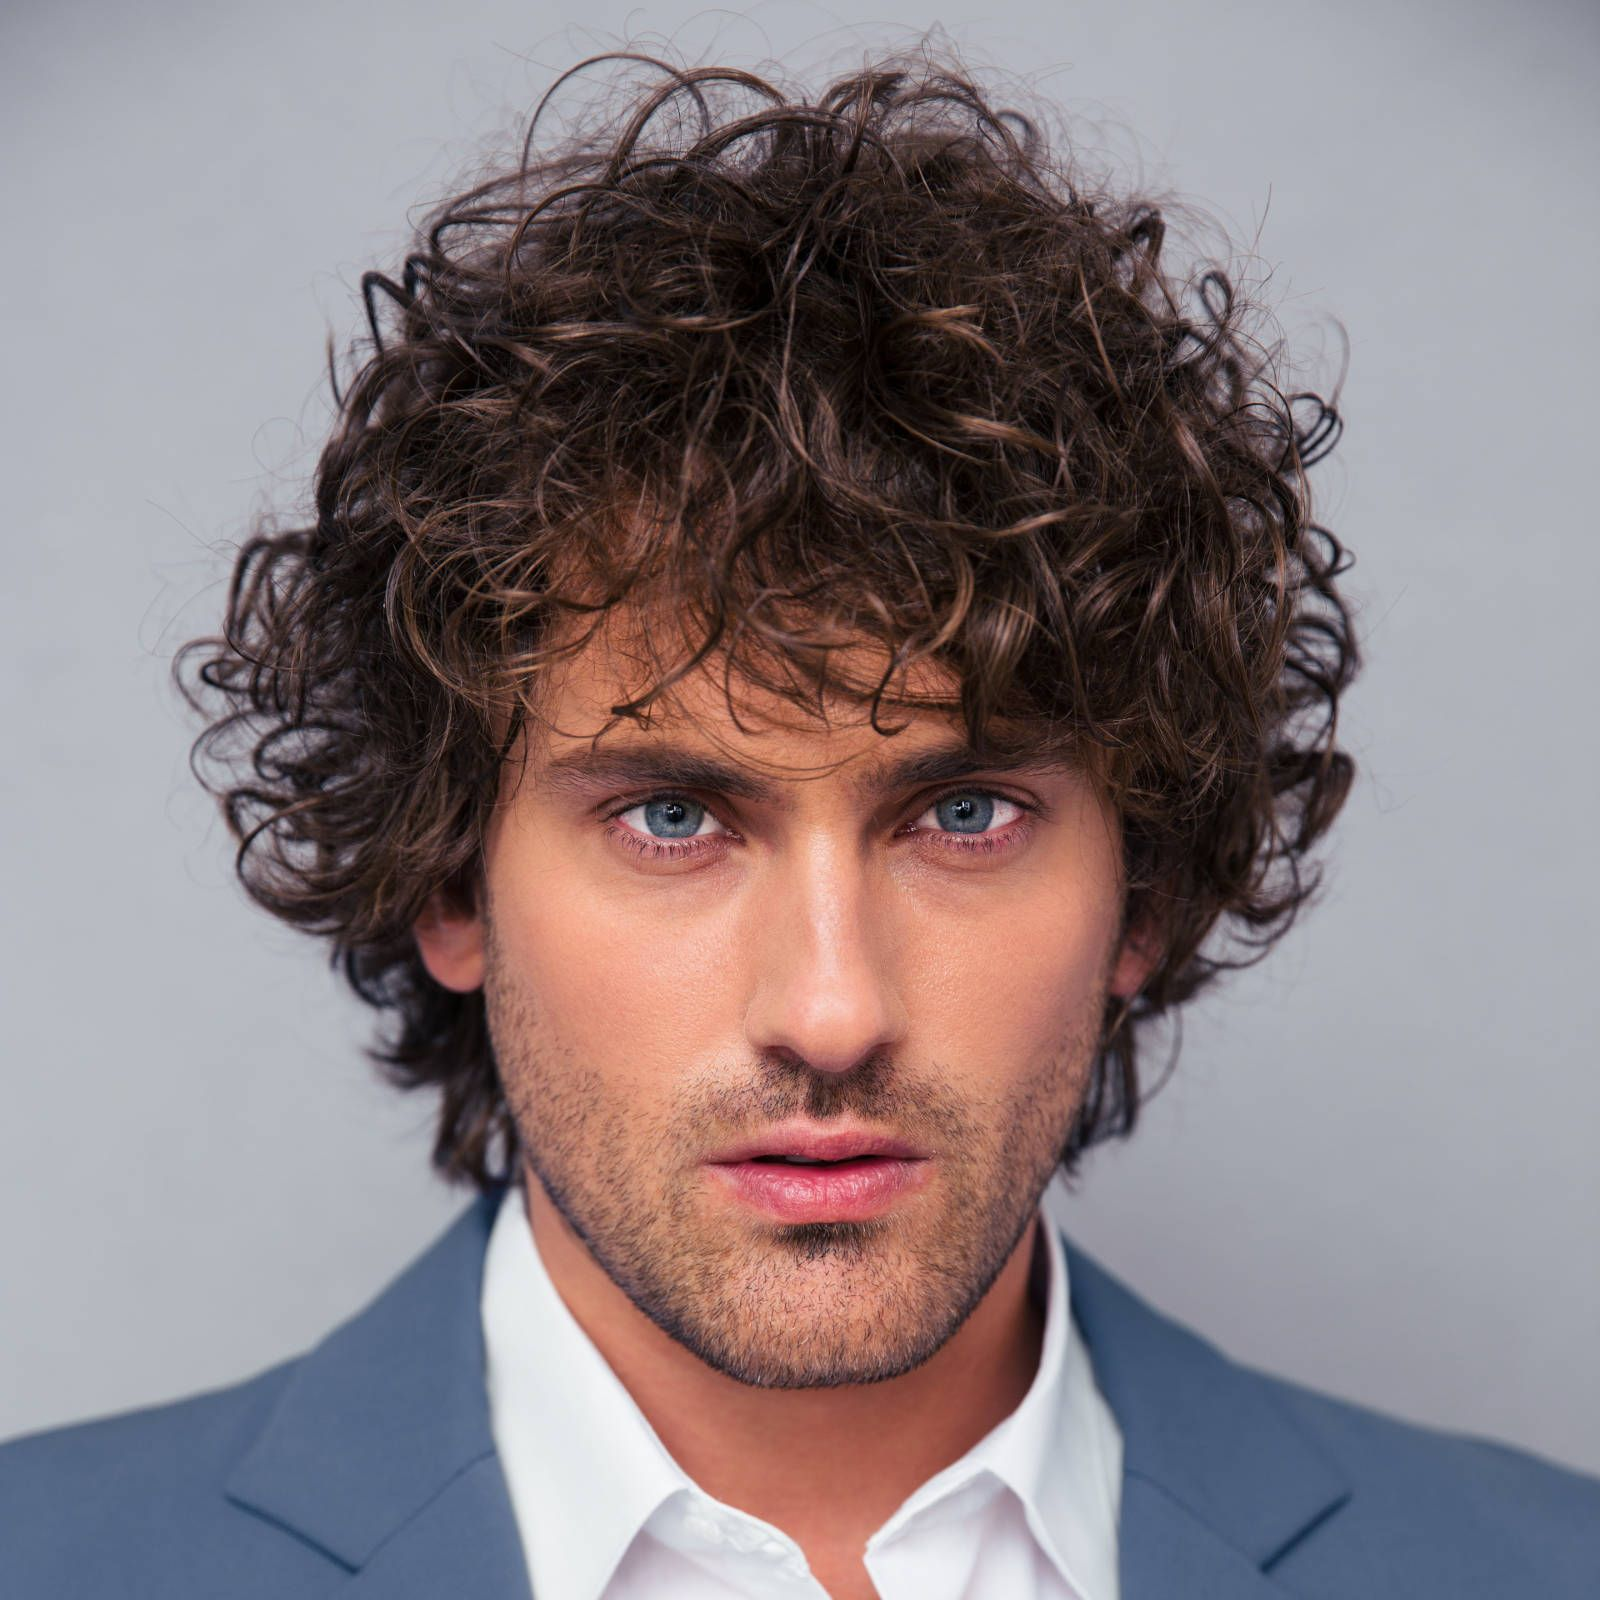 40 modern mens hairstyles for curly hair that will